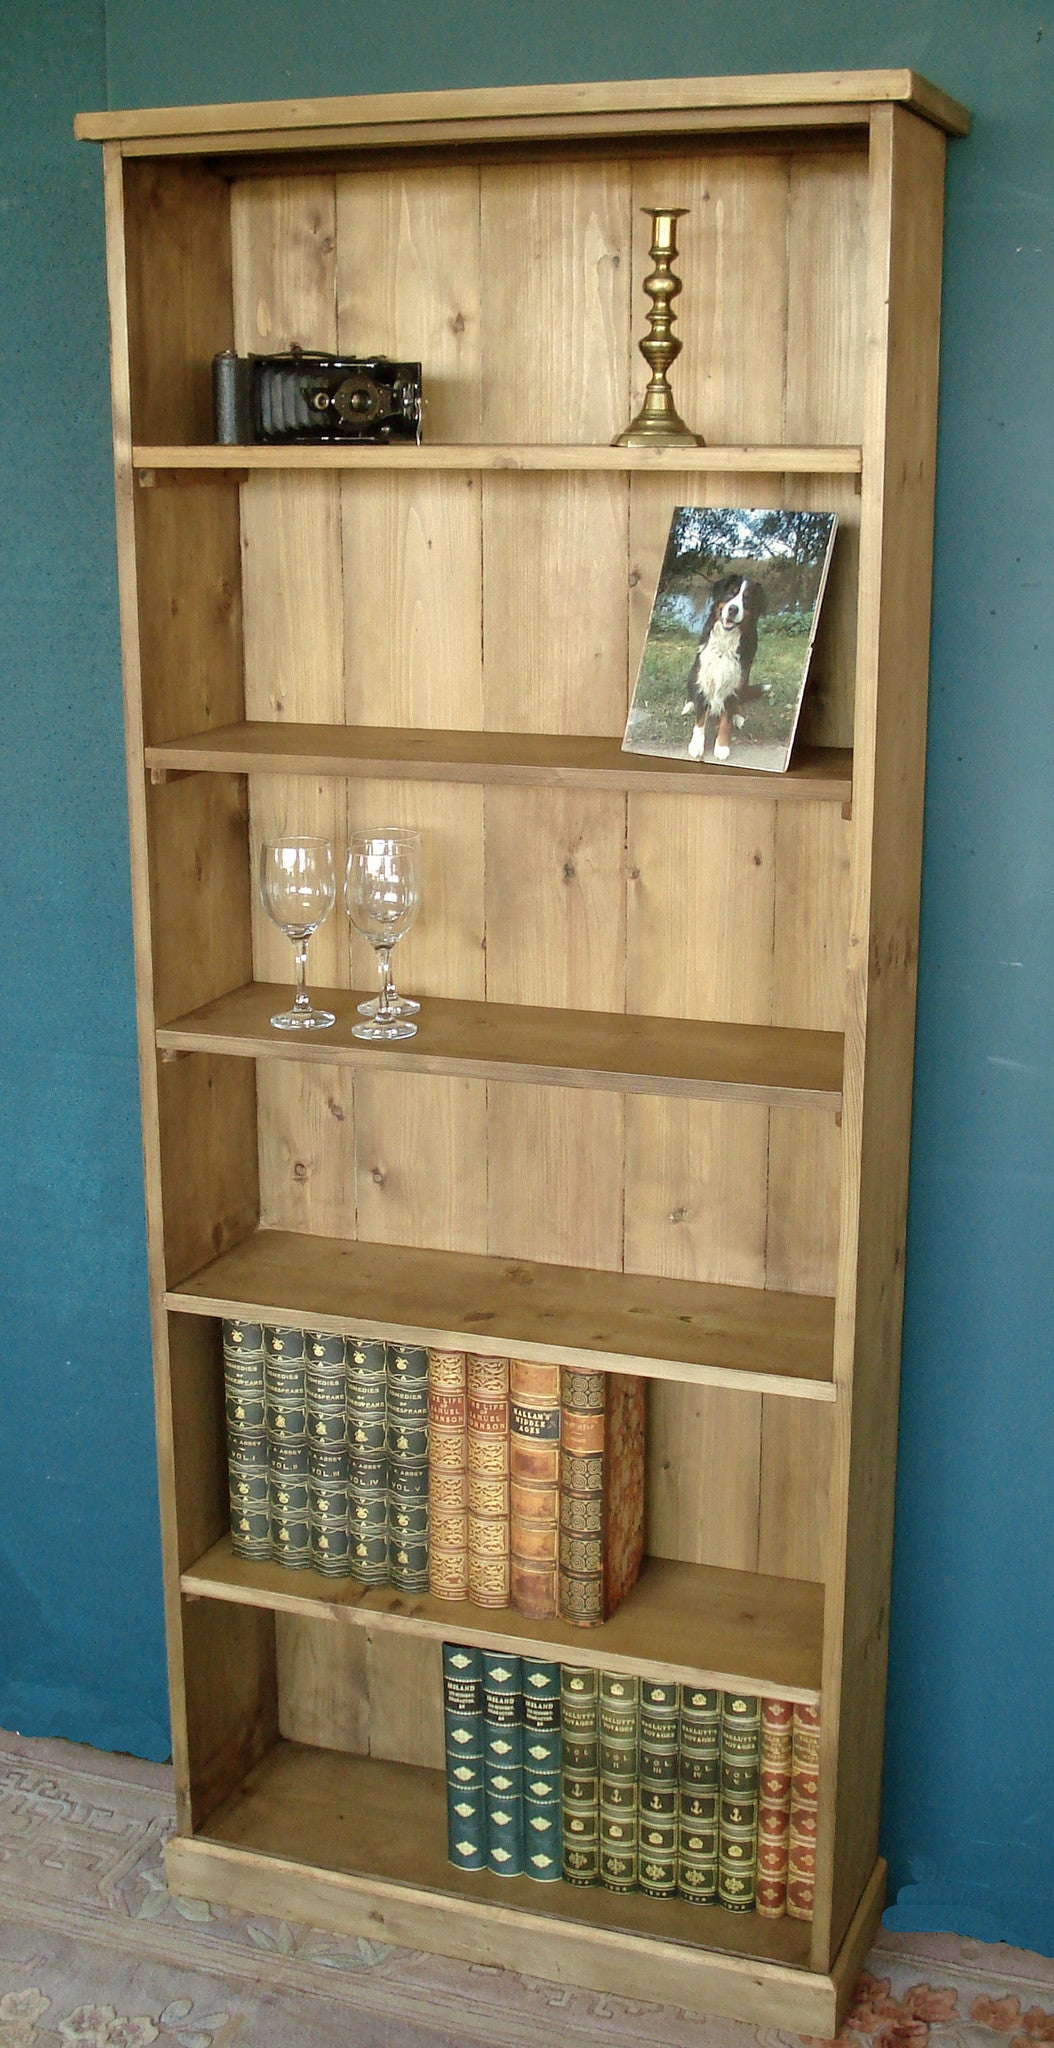 Honeypine Bookshelves Made to Measure.